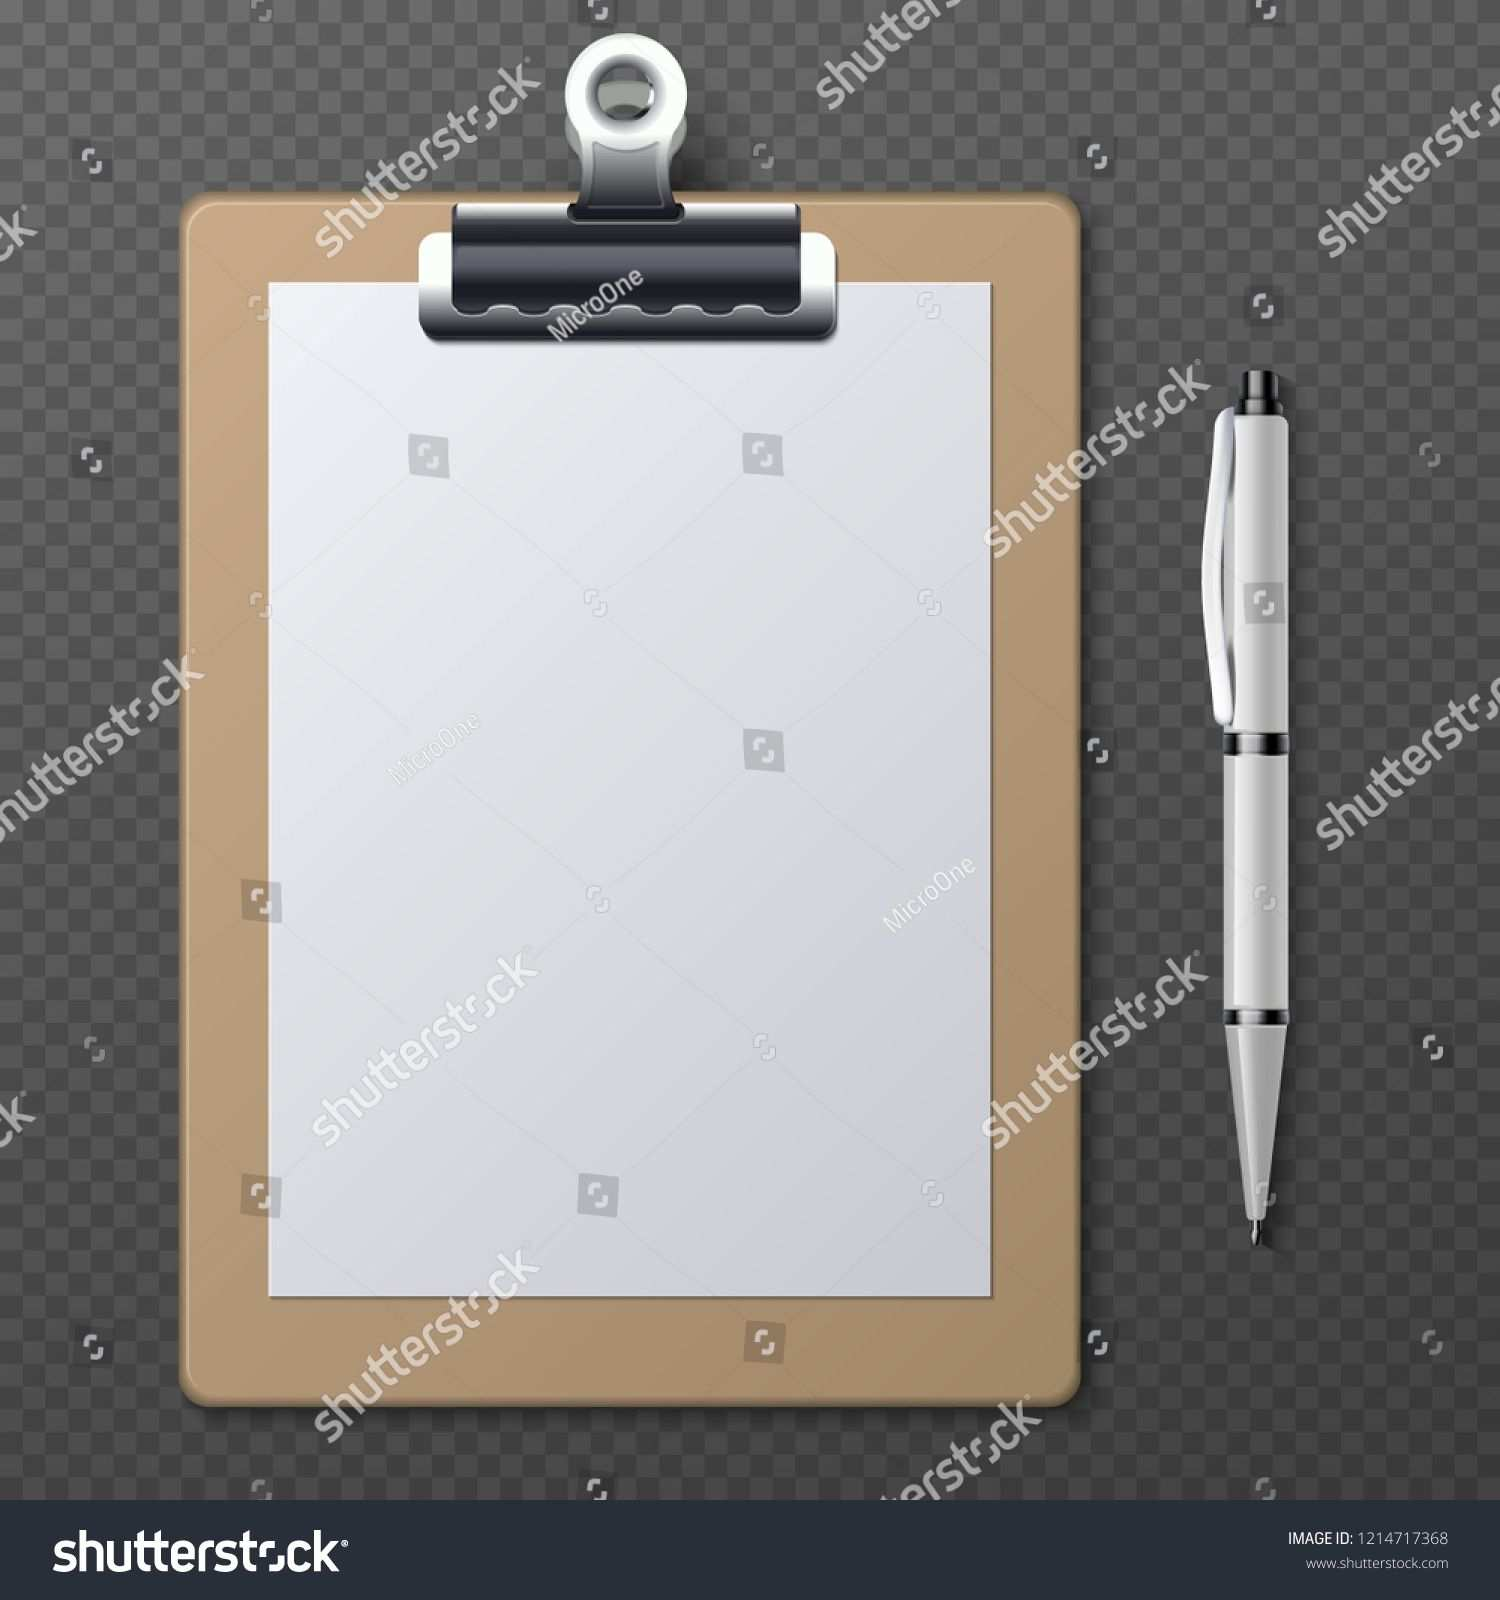 Realistic Clipboards With Blank White Paper Sheet And Pen